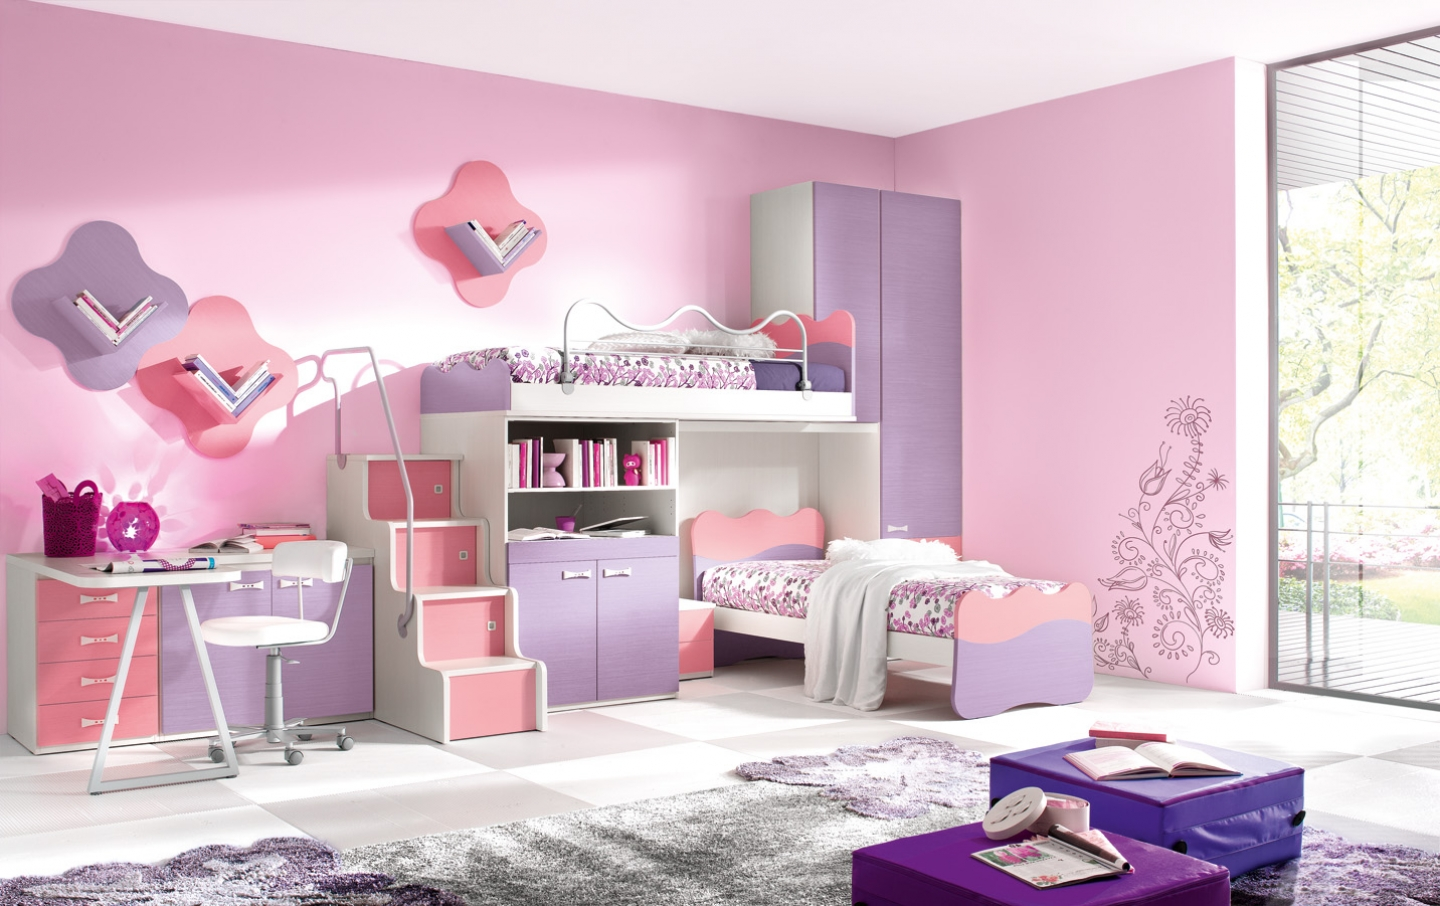 Gentil Feminine Purple And Pink Touches For Girls Bedroom Interior With Mural And  Bunk Bed